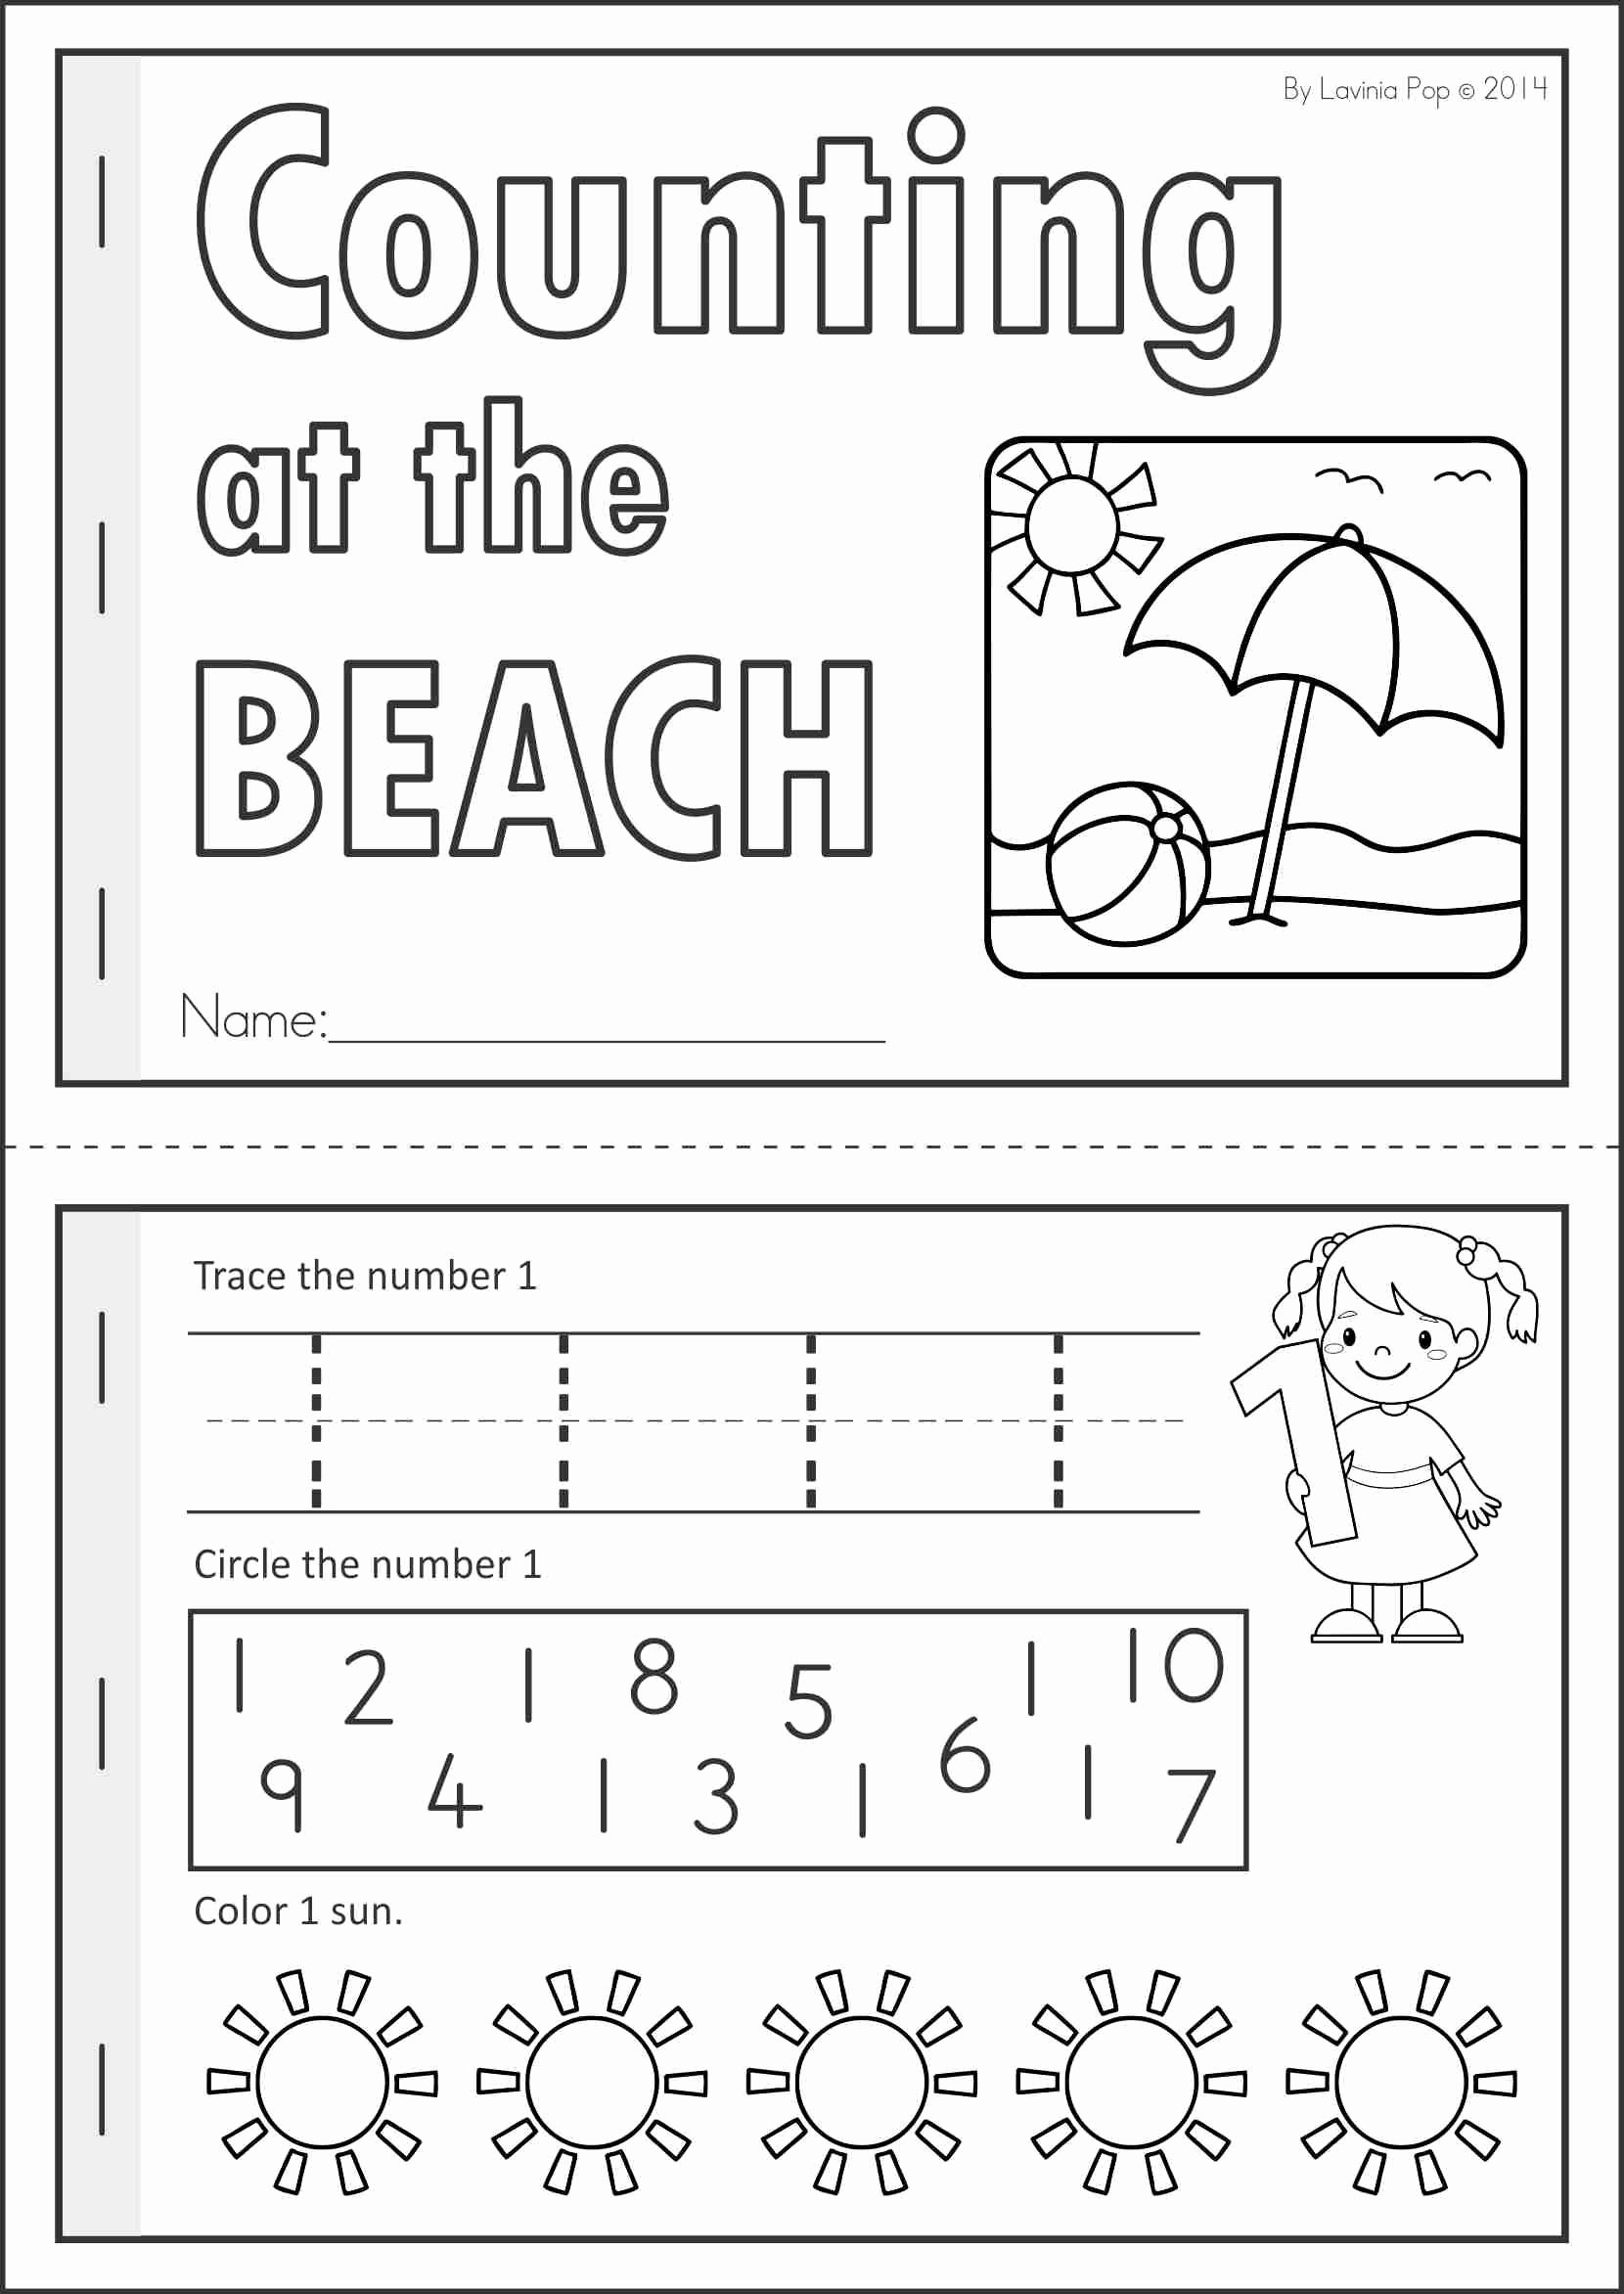 Summer Worksheets for Preschoolers Inspirational Kindergarten Summer Review Math & Literacy Worksheets